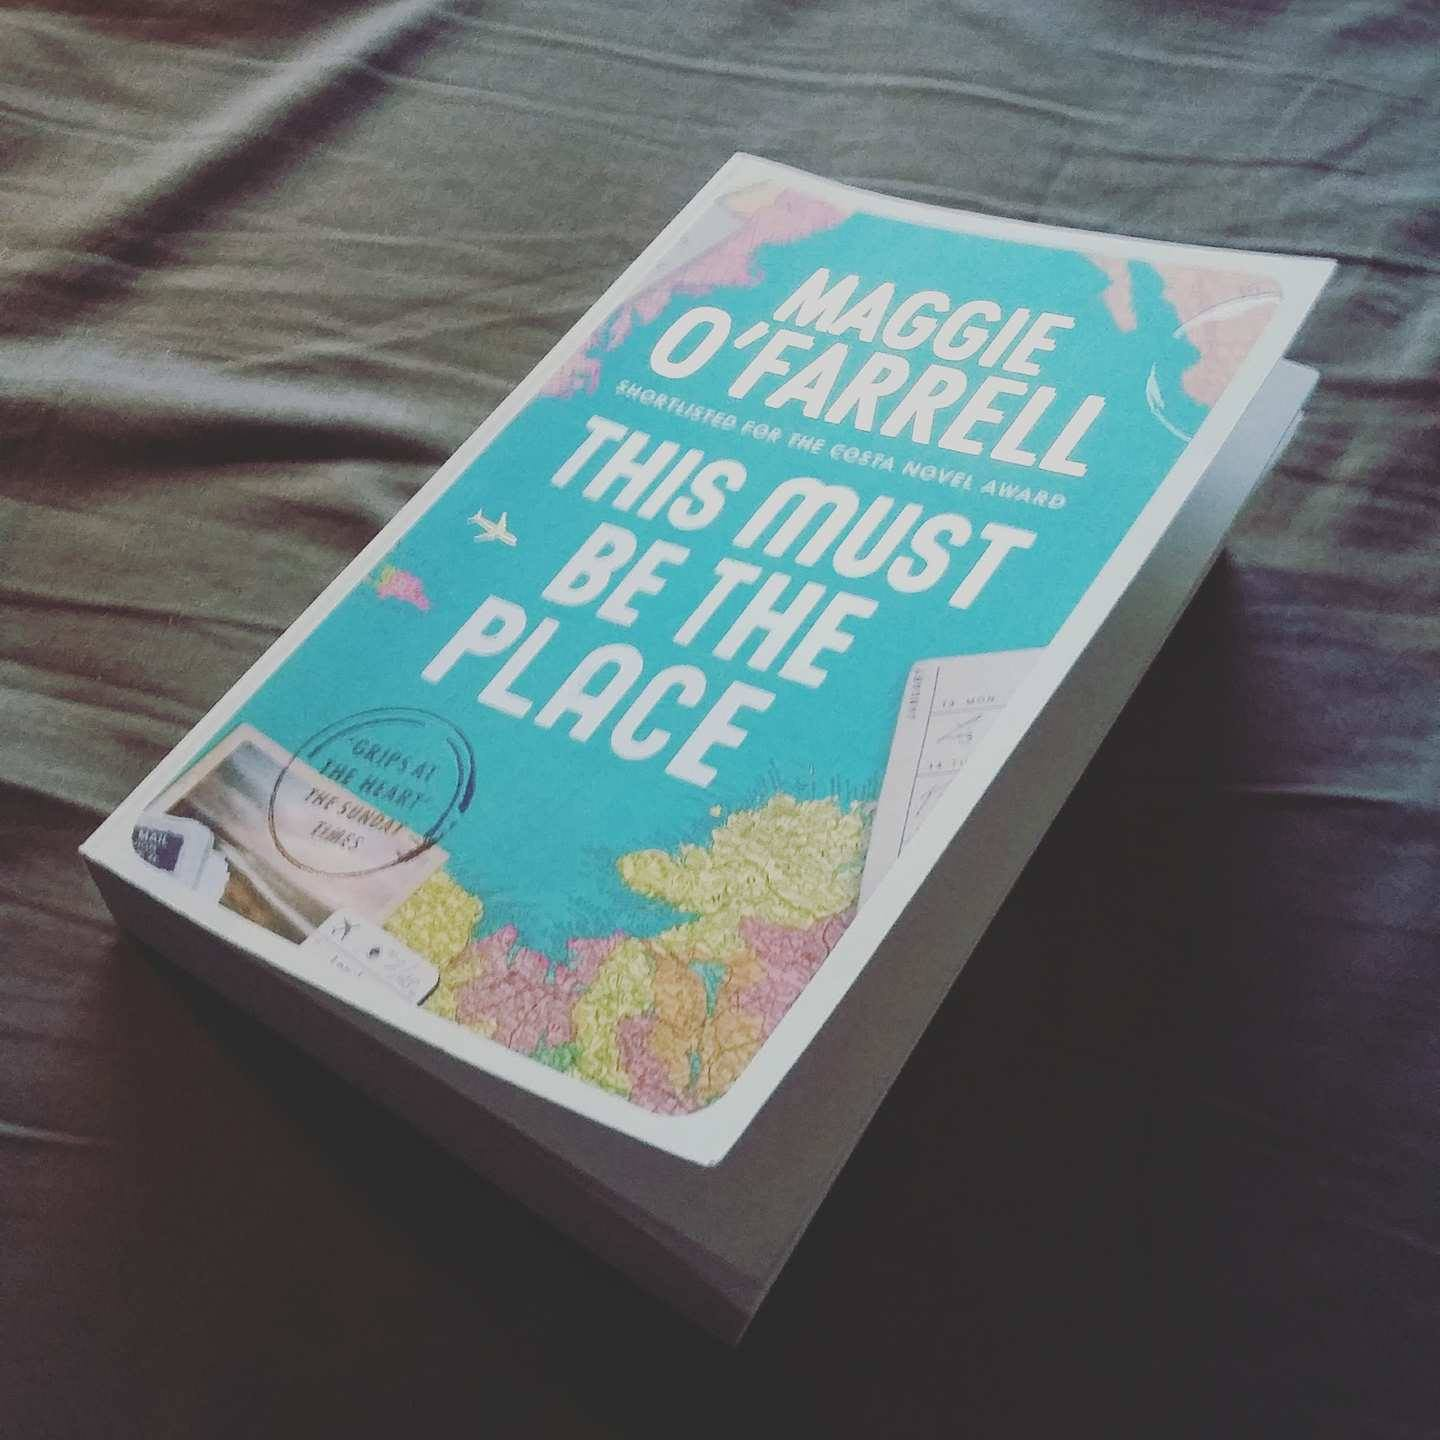 This must be the place - bibliophile review